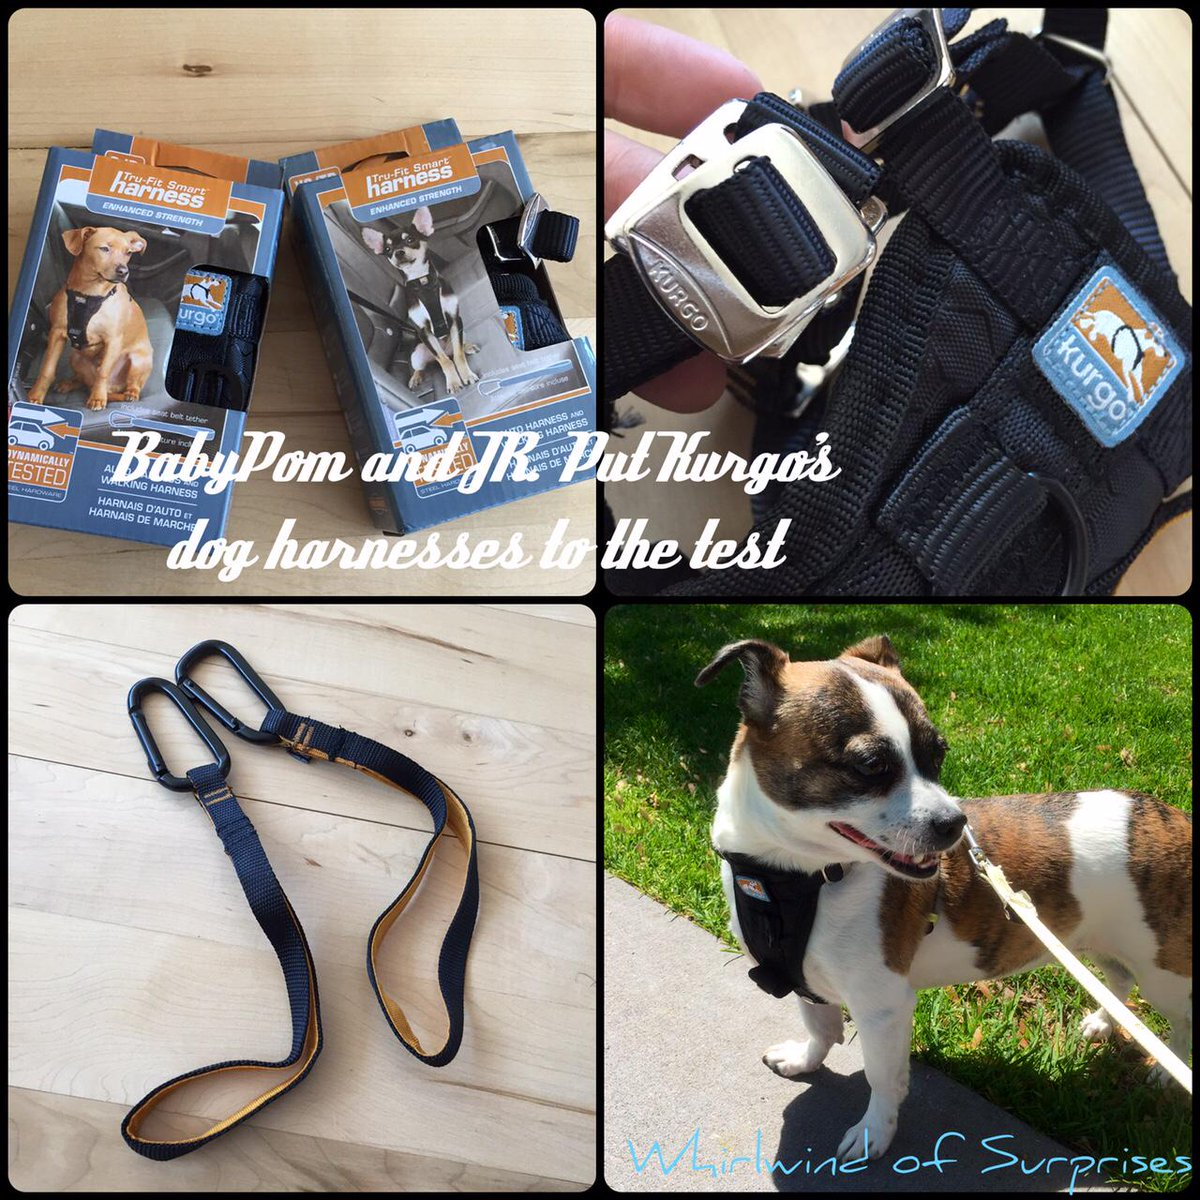 Kurgo dog harness review